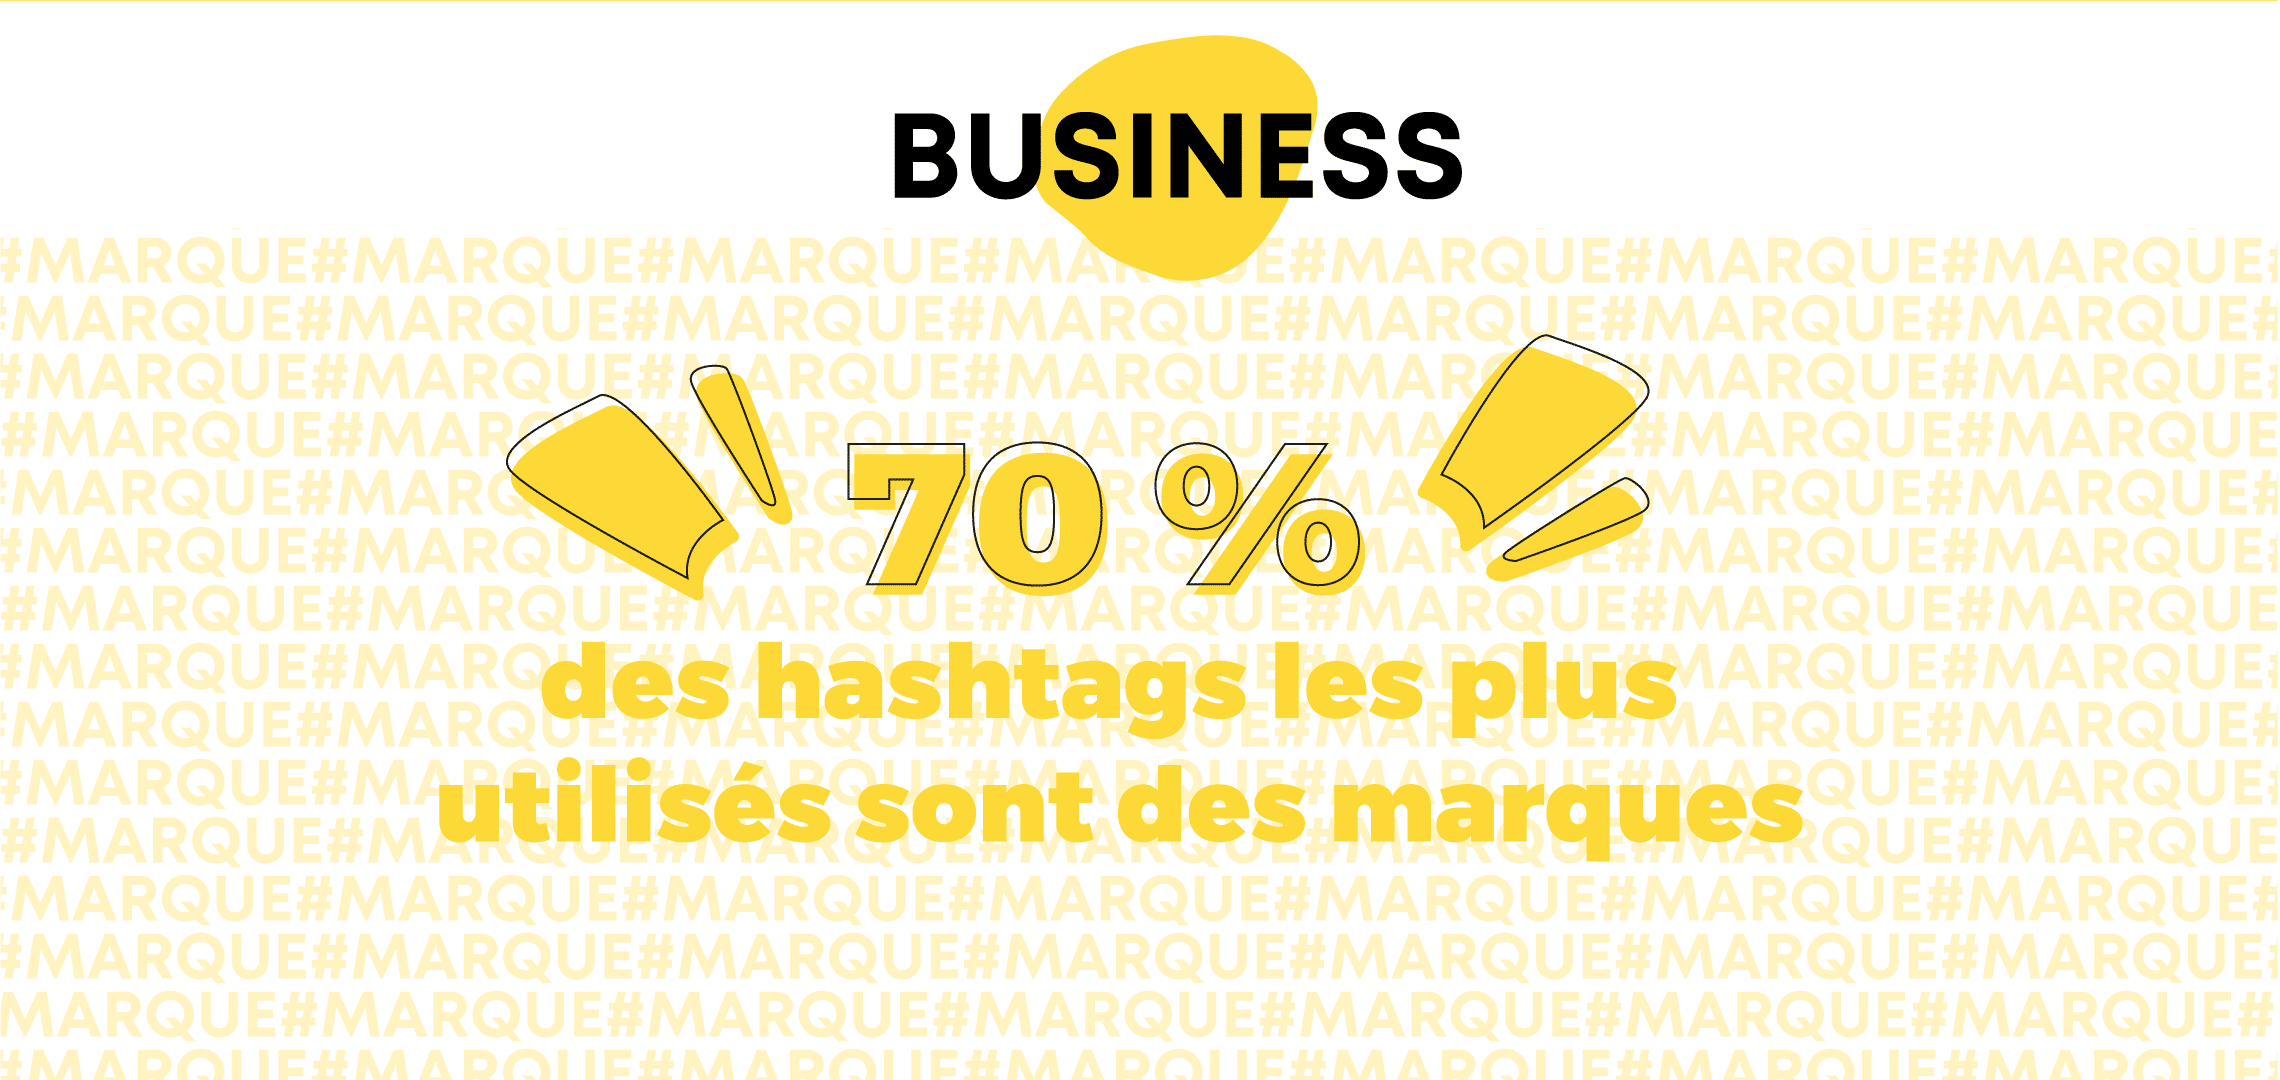 infographie crush agence de marketing d'influence les chiffres clés d'instagram comme outil d'influence digitale: business